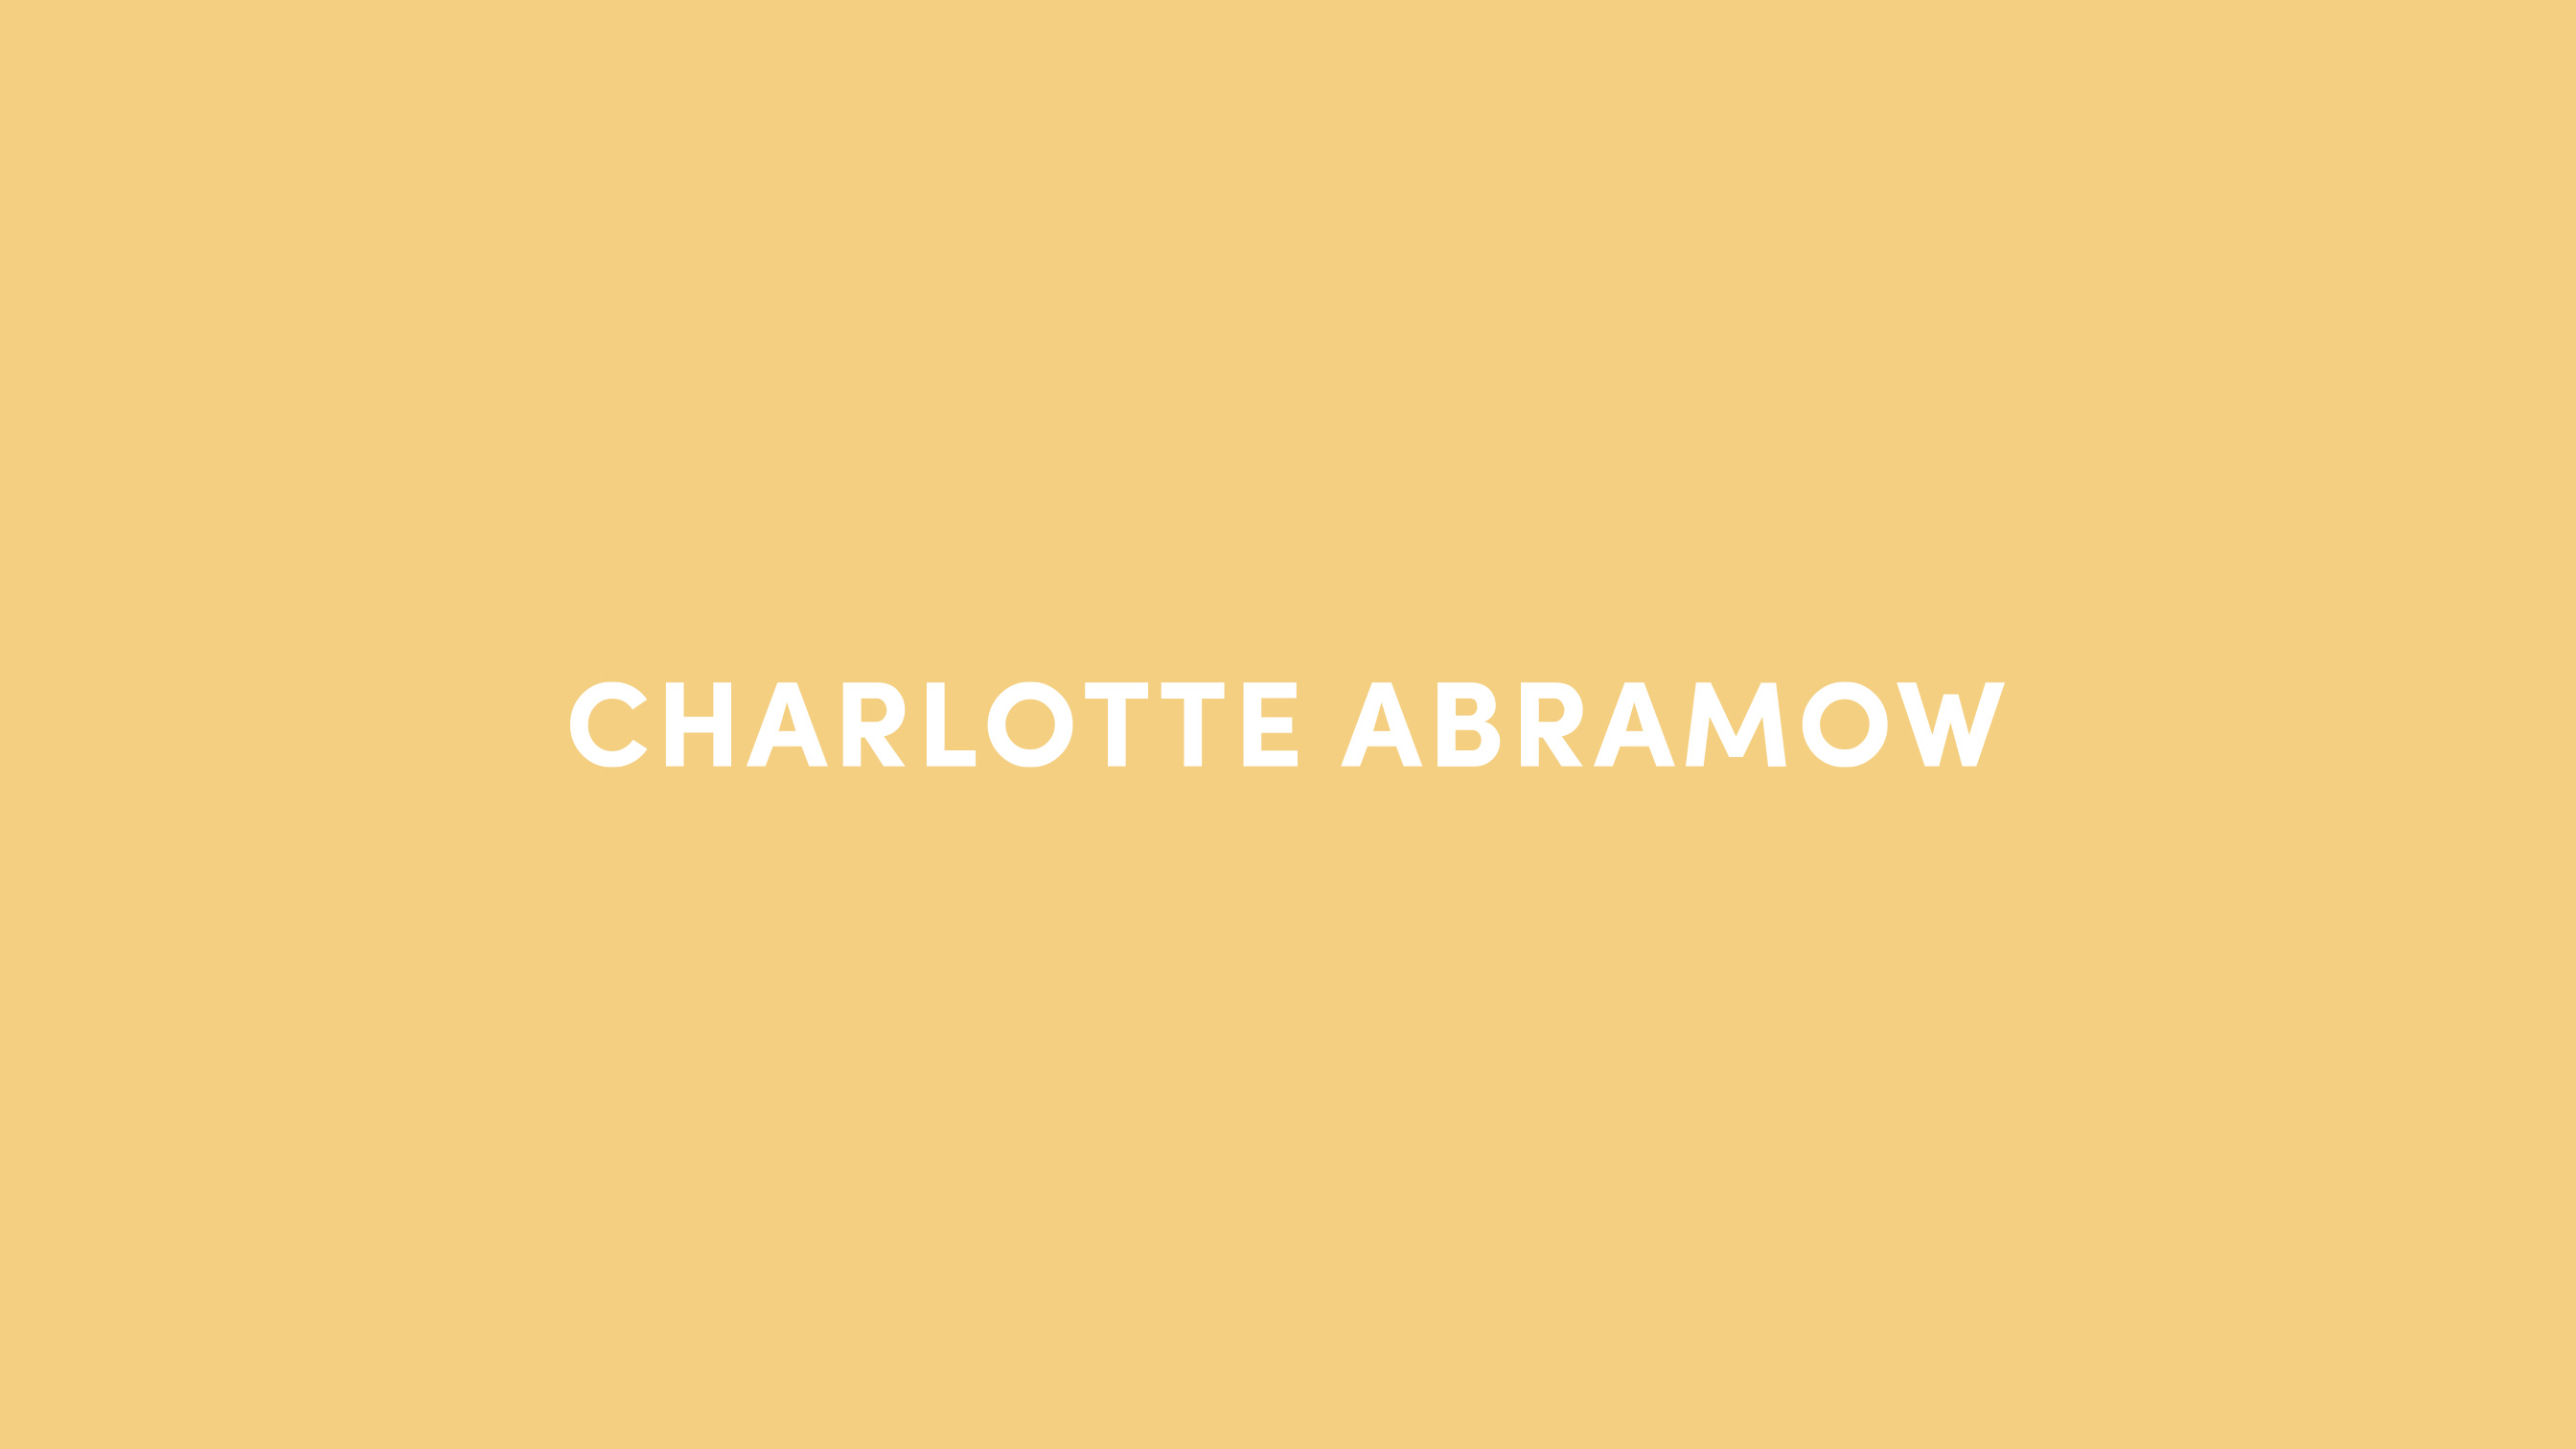 01-charlotte-abramow-pikteo-webdesign-graphic-design-freelance-paris-bruxelles-londres